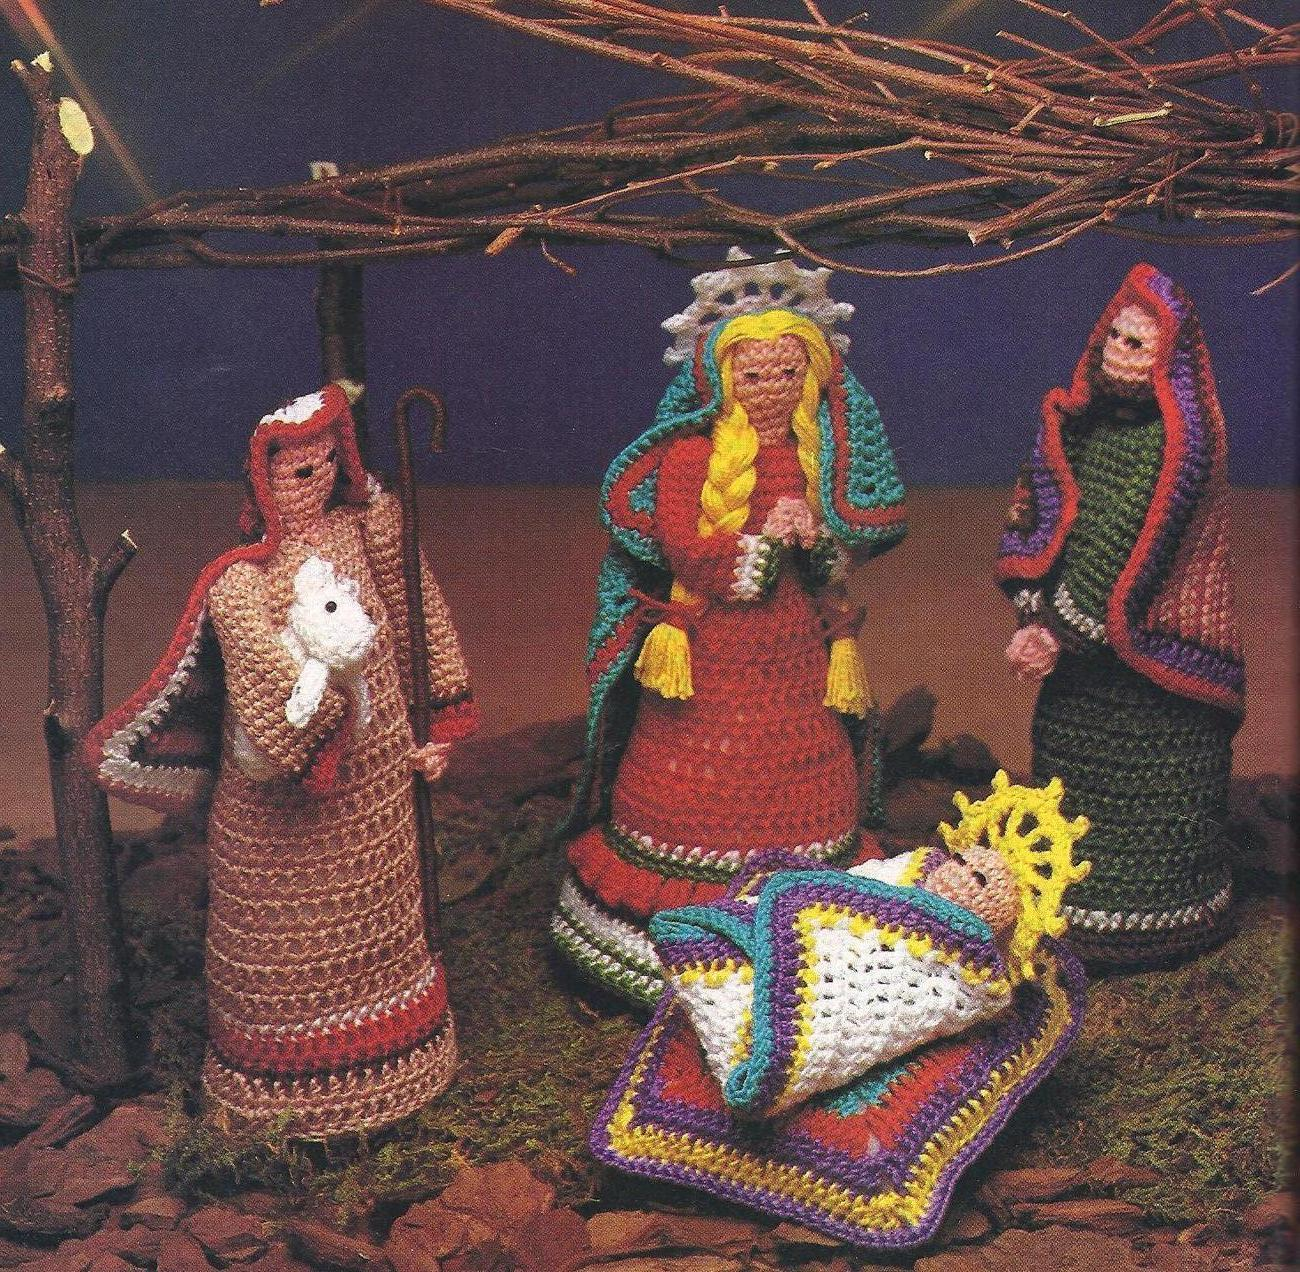 Crochet Patterns Nativity Scene : Nativity Crochet Pattern Patterns Gallery